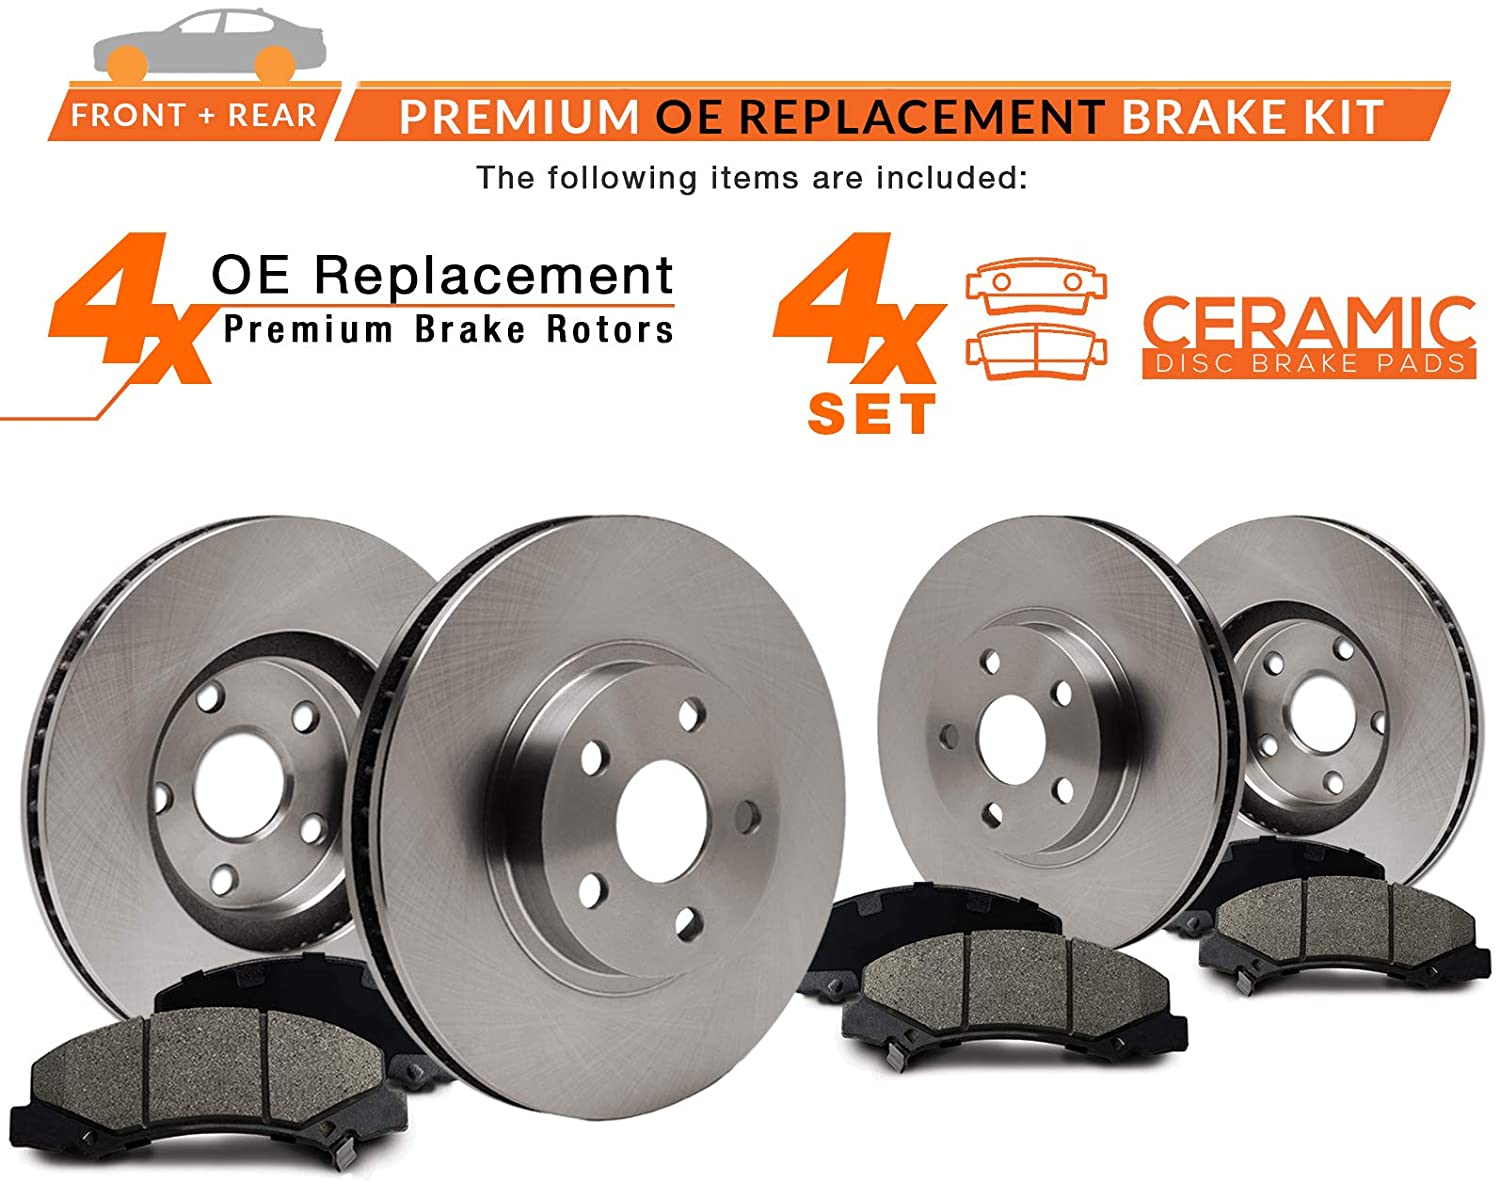 KT007543-1 Max Brakes Front /& Rear Premium OE Rotors and Ceramic Pads Brake Kit